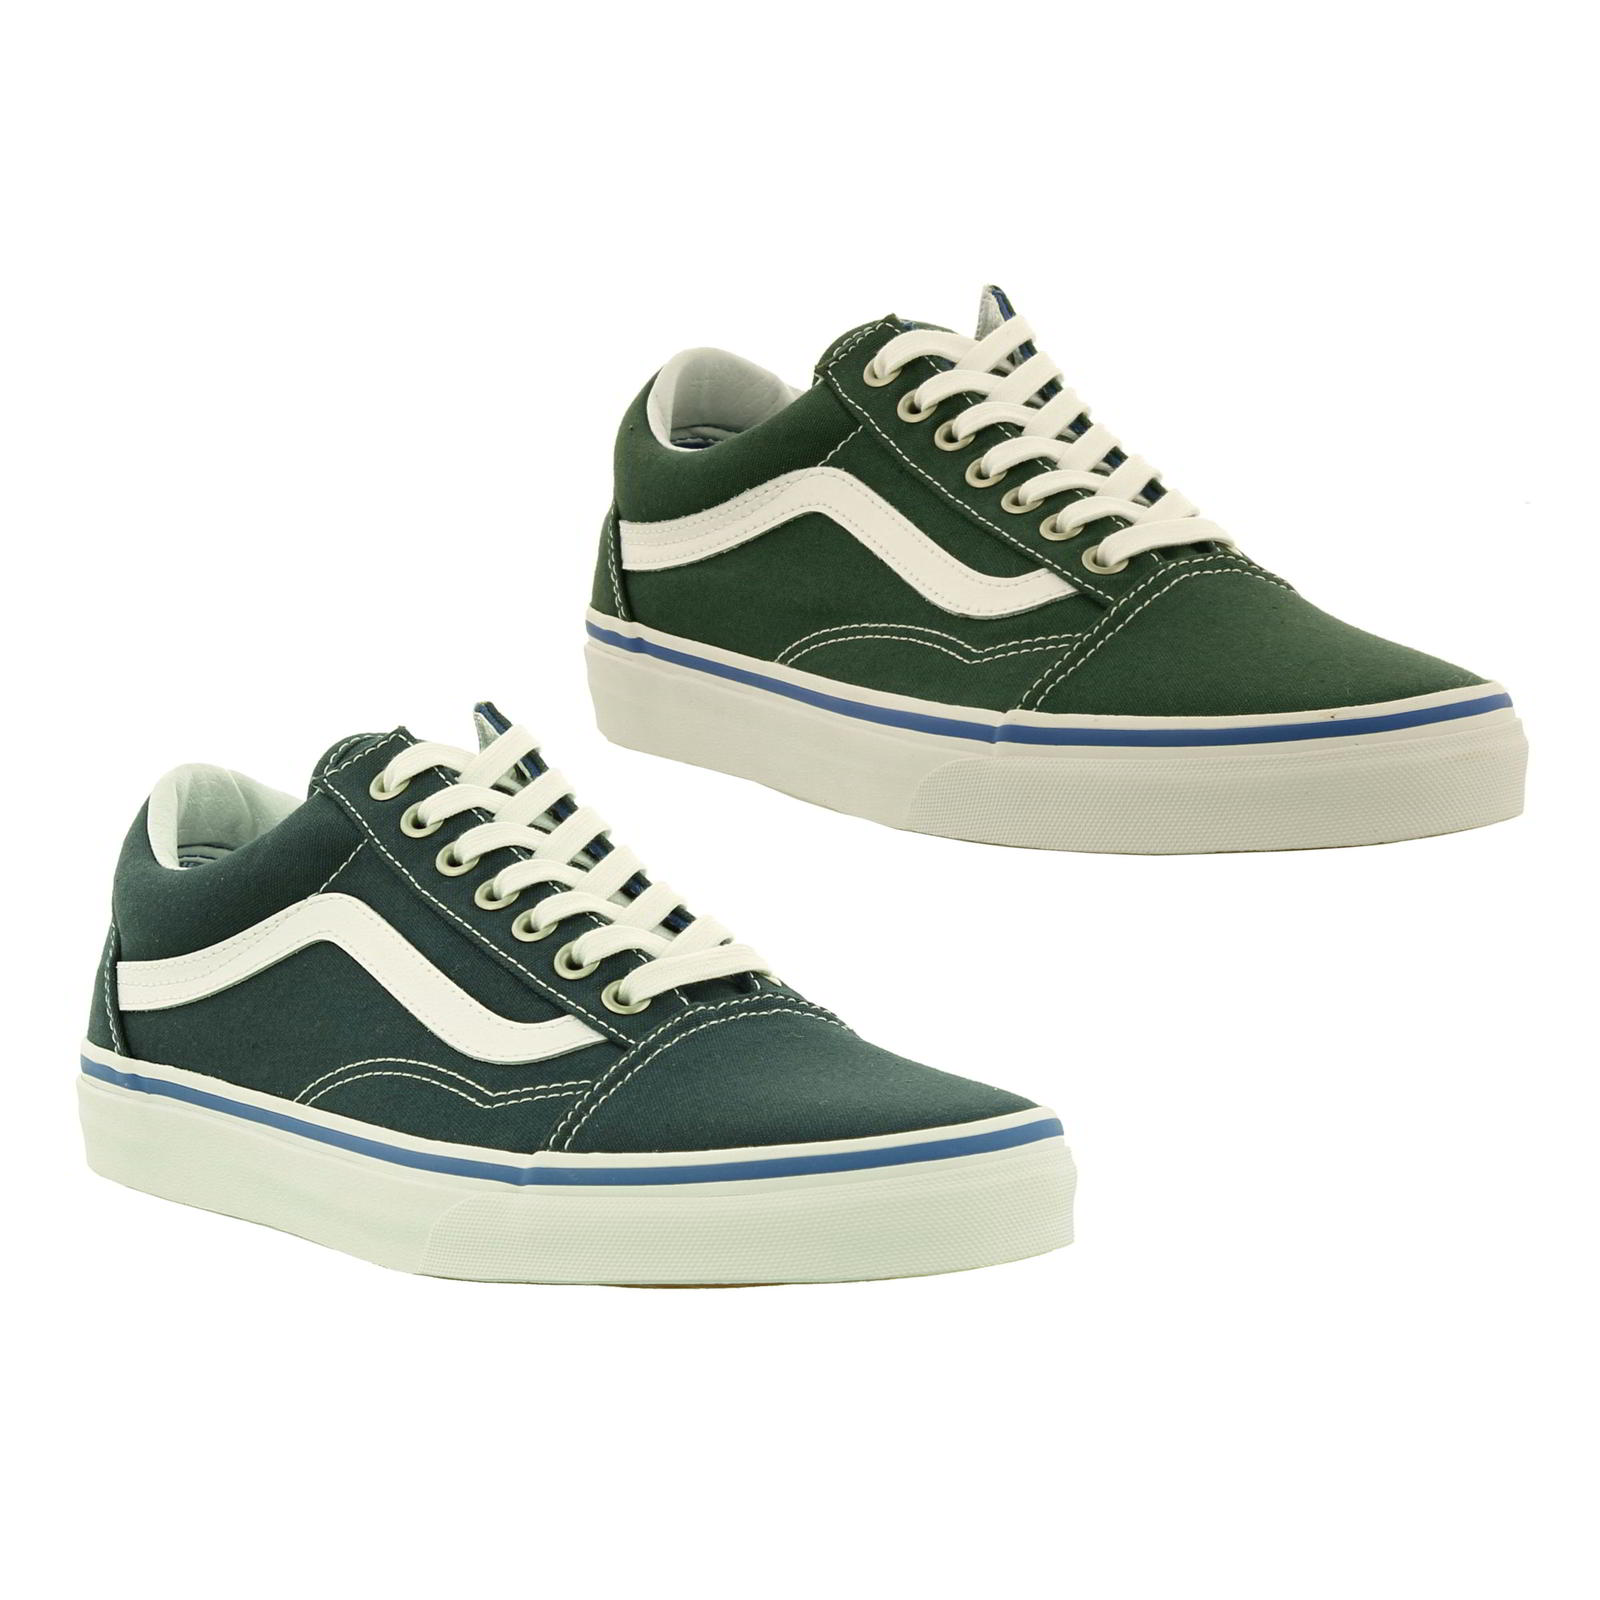 Details about Vans Old Skool Mens Classic Green Blue Skate Shoes Trainers  Size UK 8-12 f57734cc0